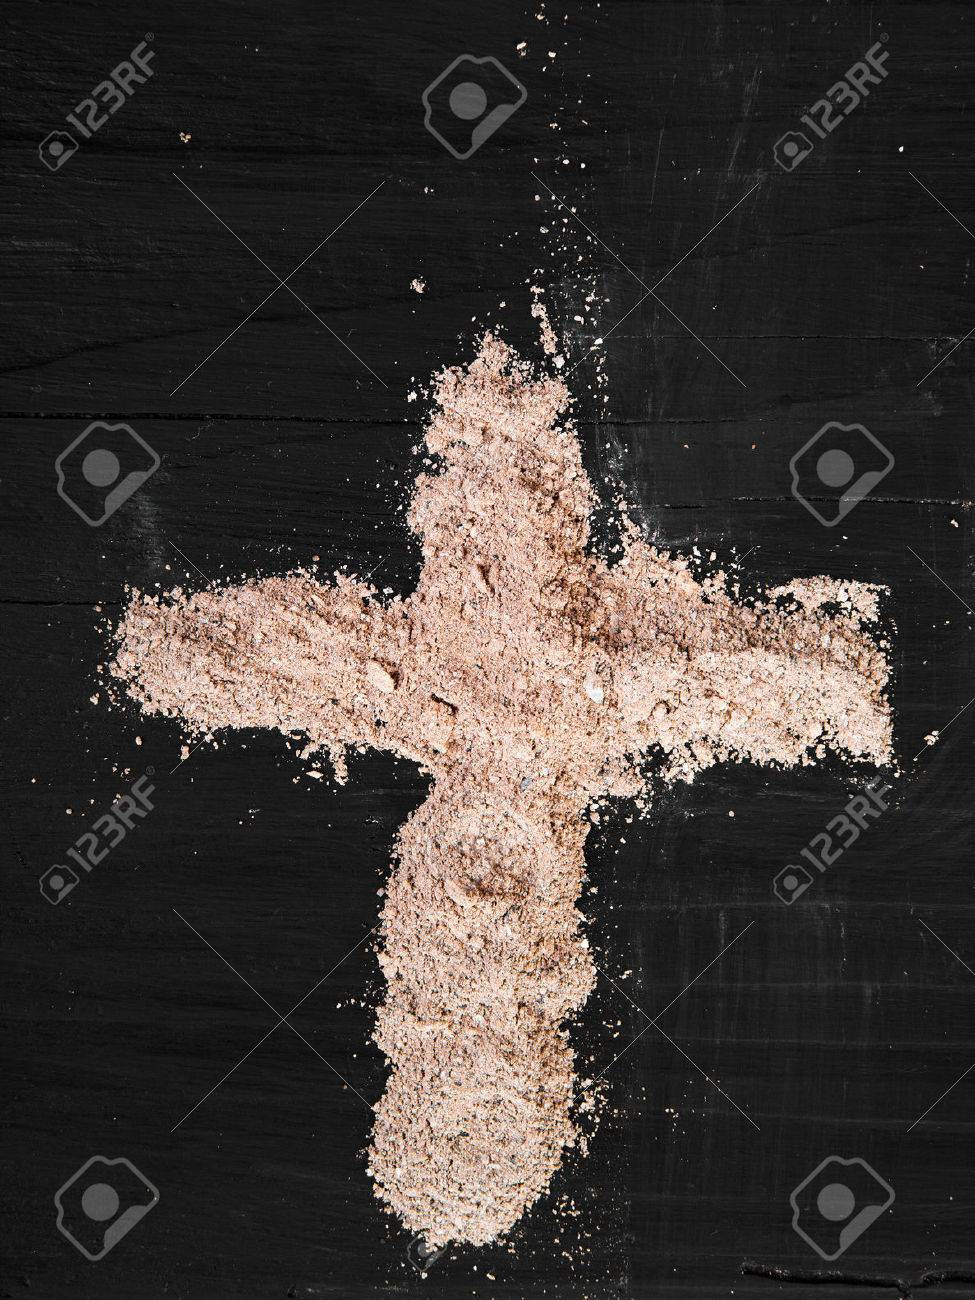 Cross of ashes symbol of ash wednesday stock photo picture and cross of ashes symbol of ash wednesday stock photo 51359050 buycottarizona